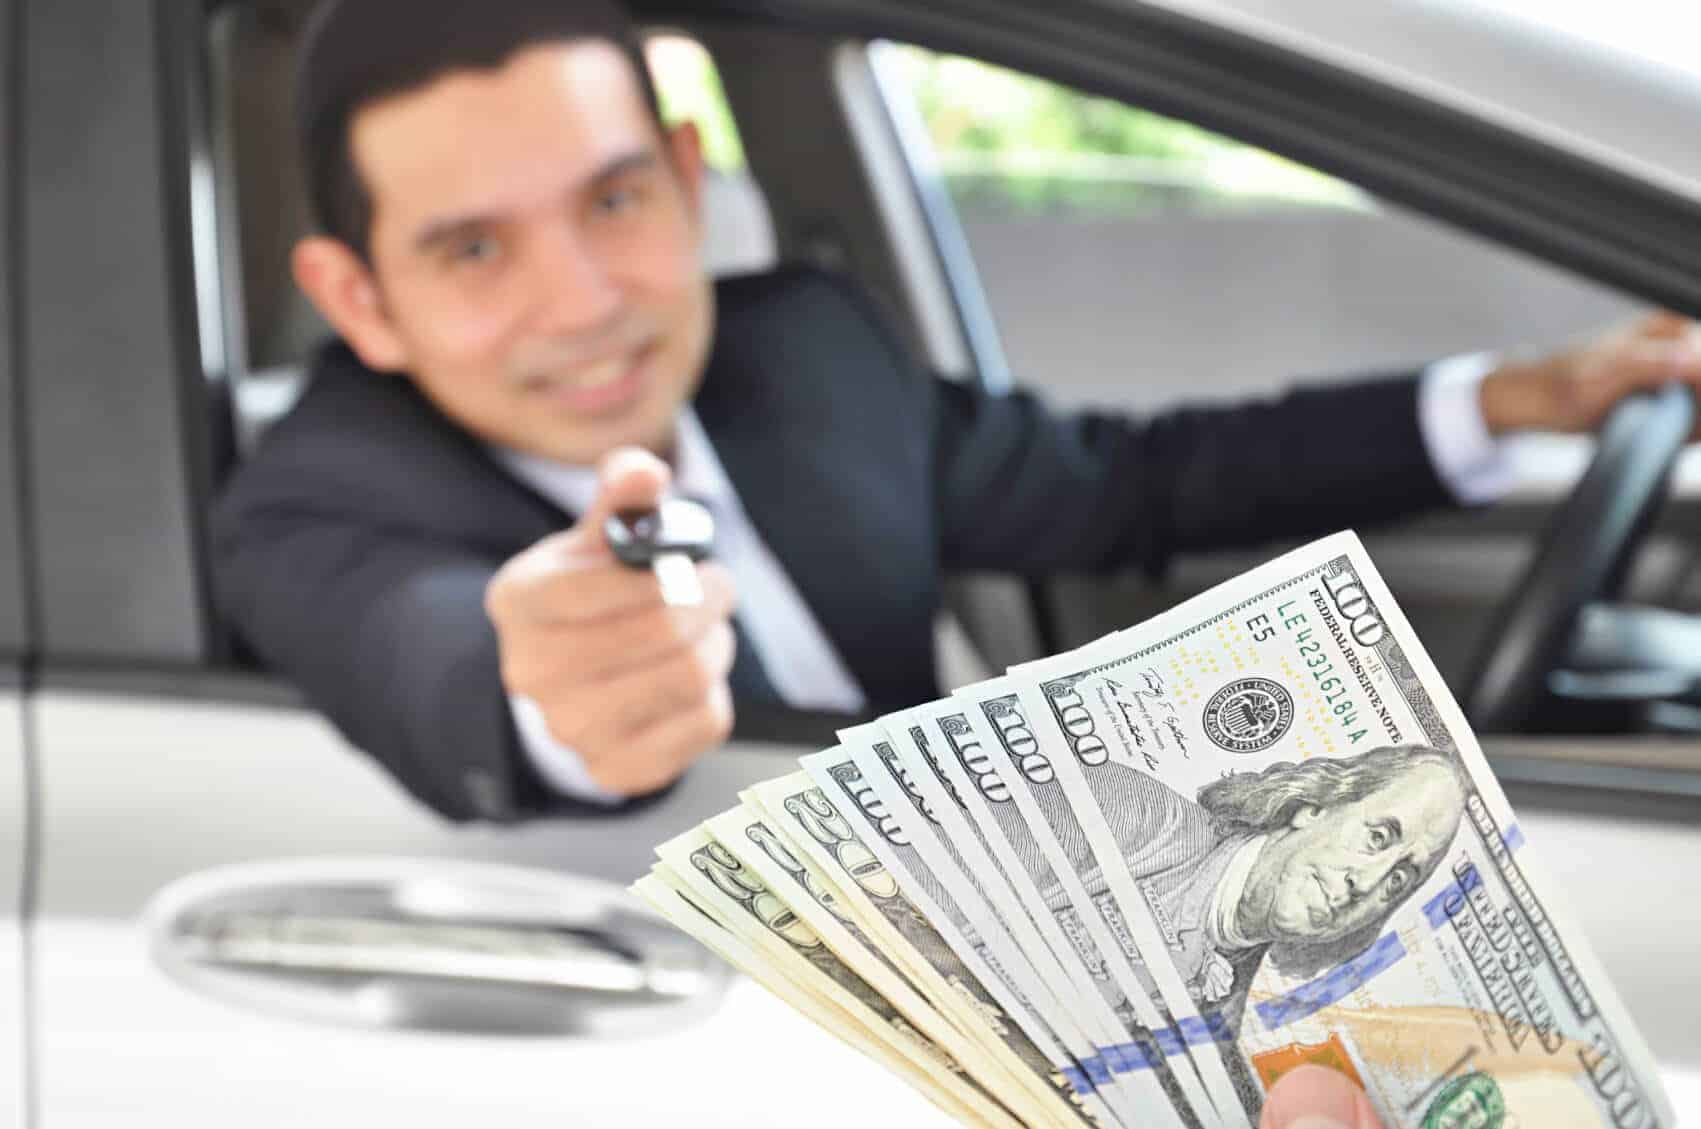 man exchanging keys to car for cash